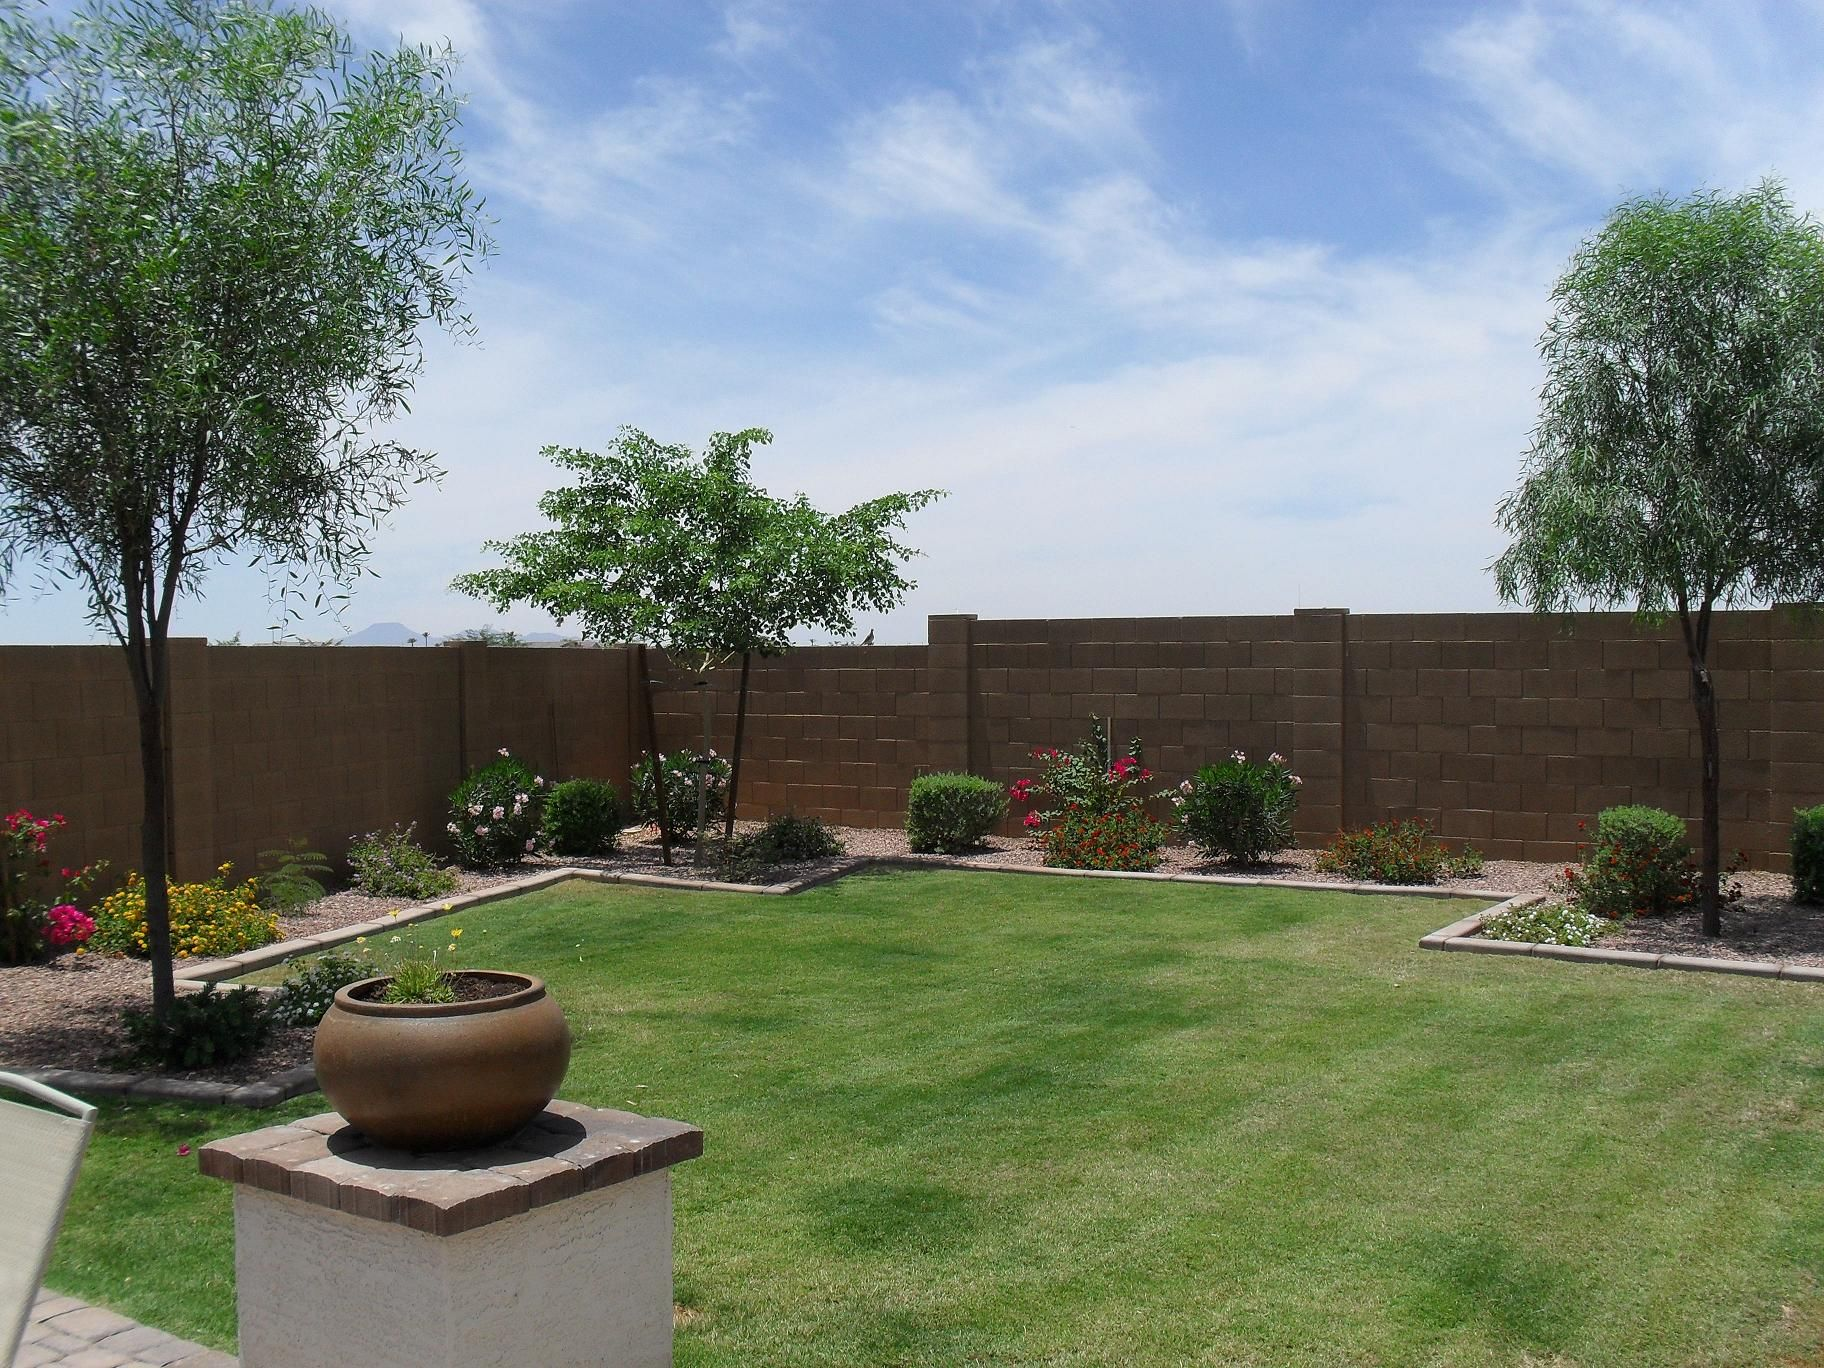 (and EXTREMELY Nice) Backyard. Pretty Sure It Was. Arizona Backyard IdeasSimple  ...